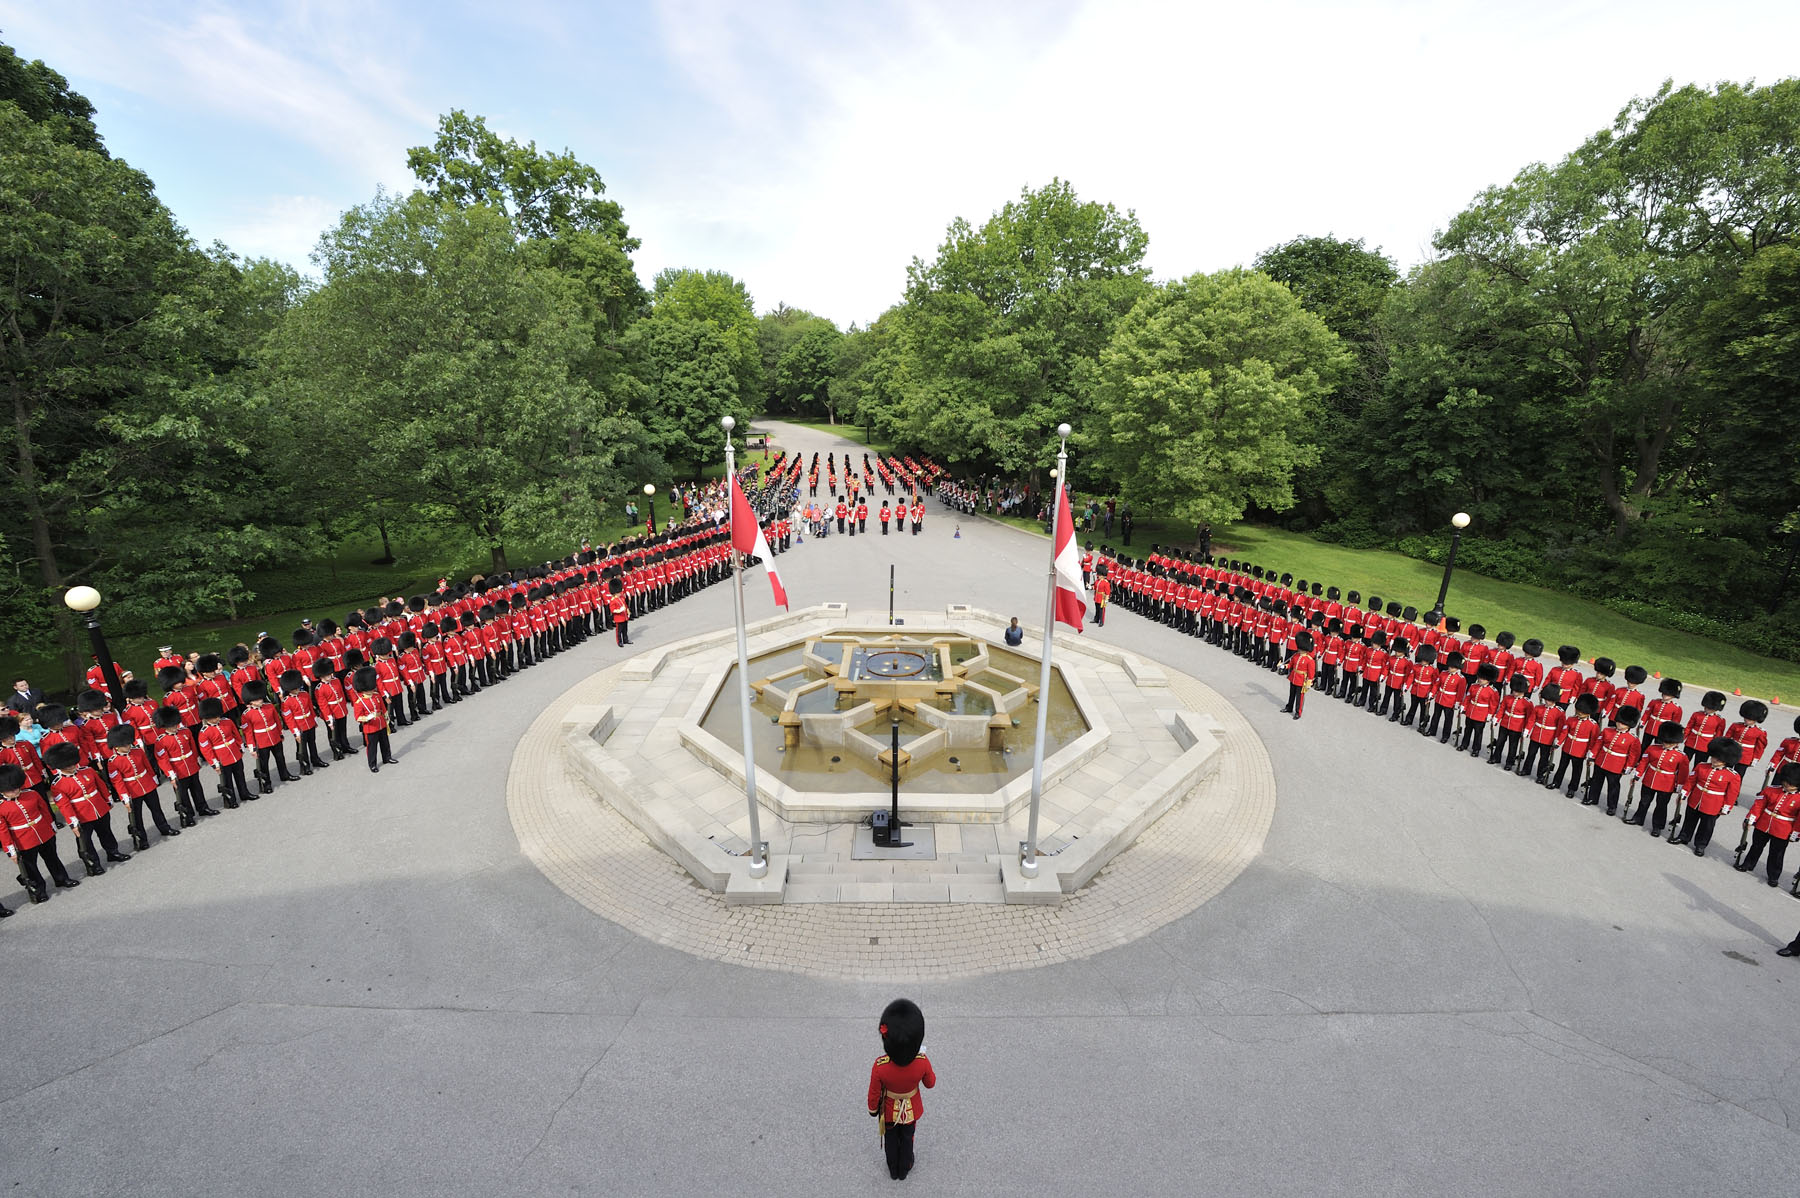 The Ceremonial Guard is a unit of the Canadian Forces that performs a variety of public duties in Ottawa between late June and the end of August.